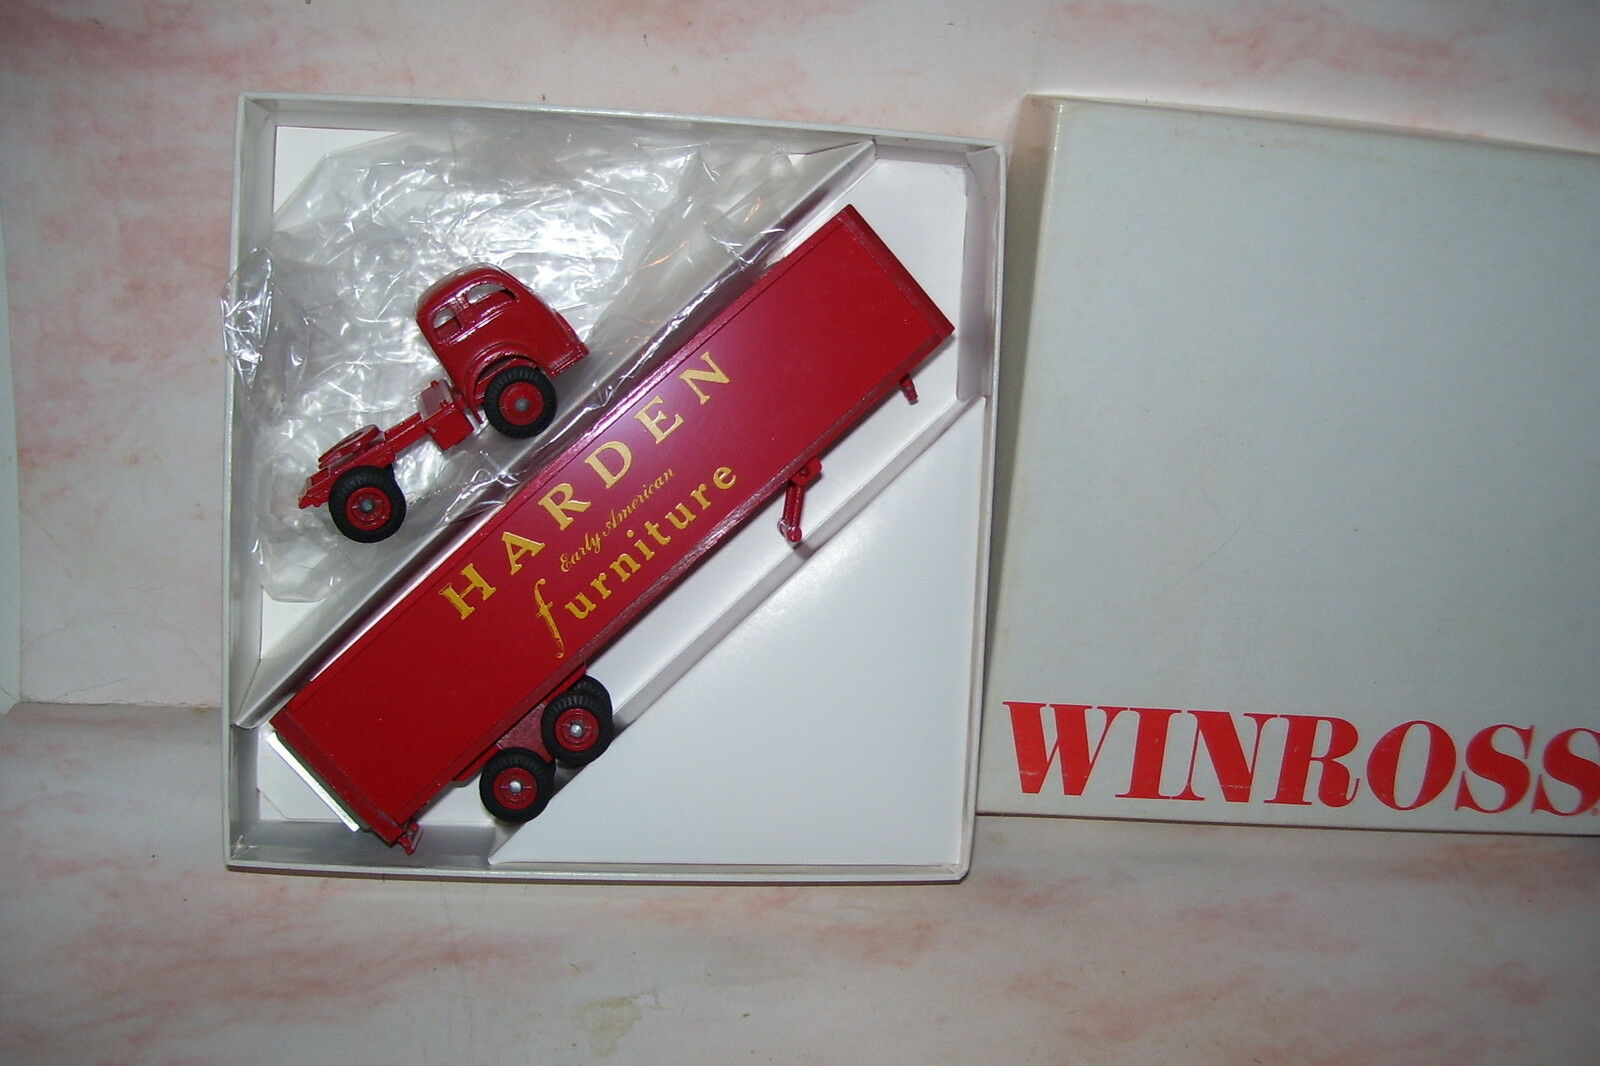 1969 Harden Early American Furniture WINROSS Diecast camion